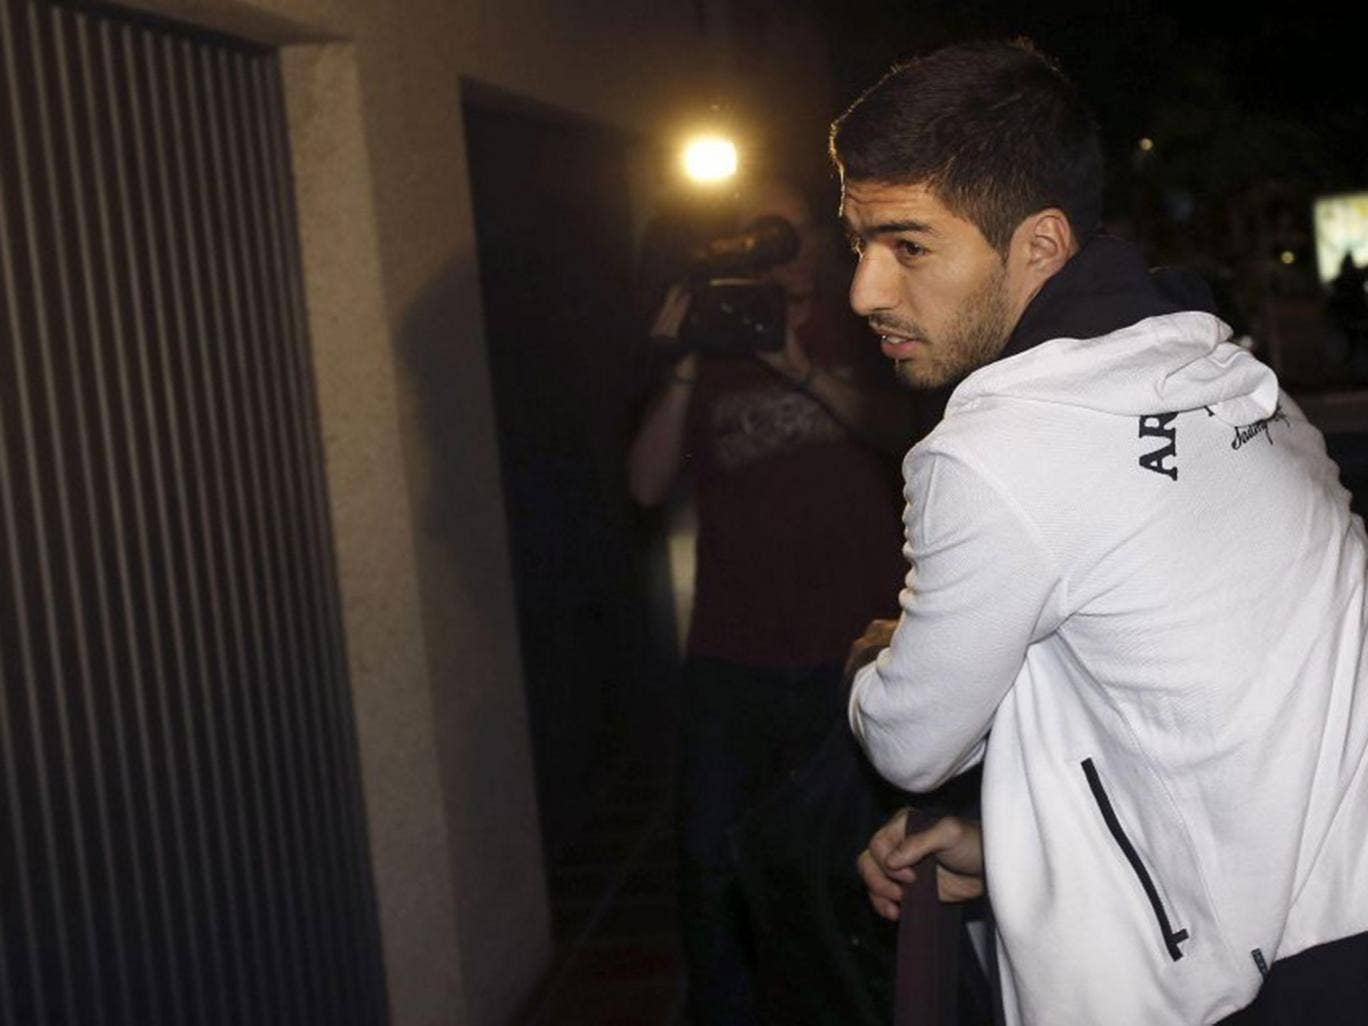 Luis Suarez arrived in Barcelona ahead of officially announcing his move to the club